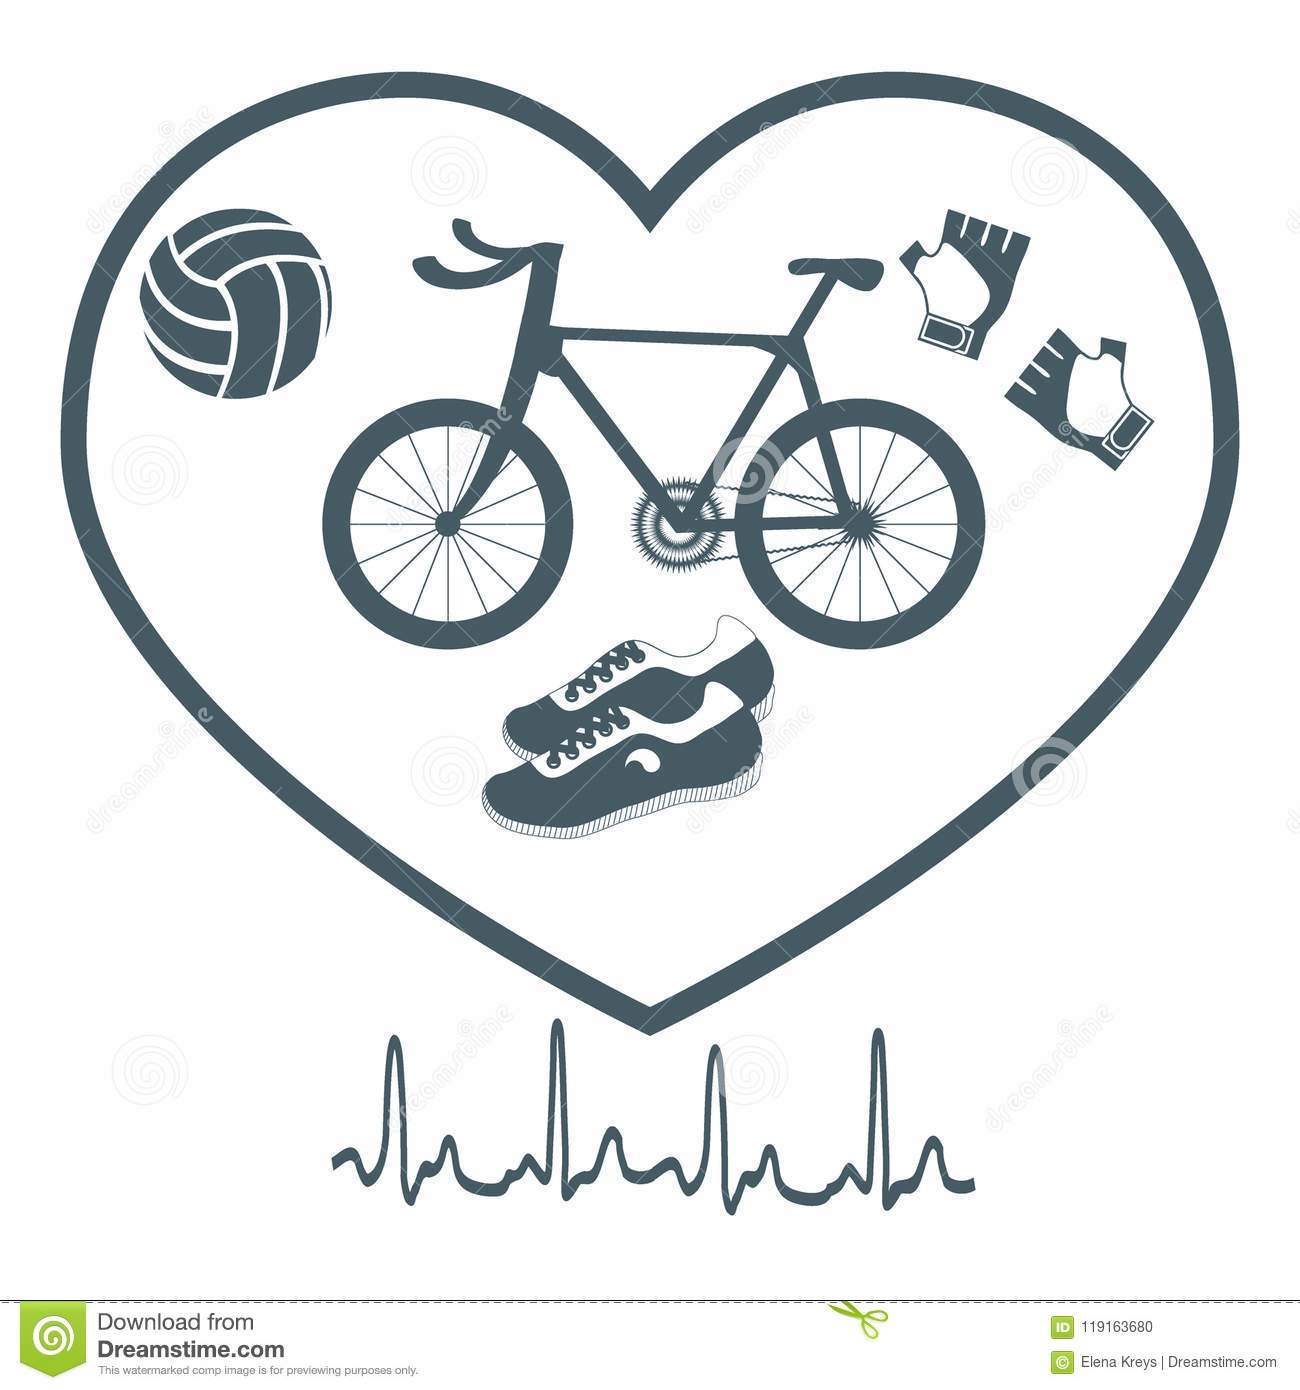 Sneakers Heart Laces Stock Illustrations 58 Sneakers Heart Laces Stock Illustrations Vectors Clipart Dreamstime